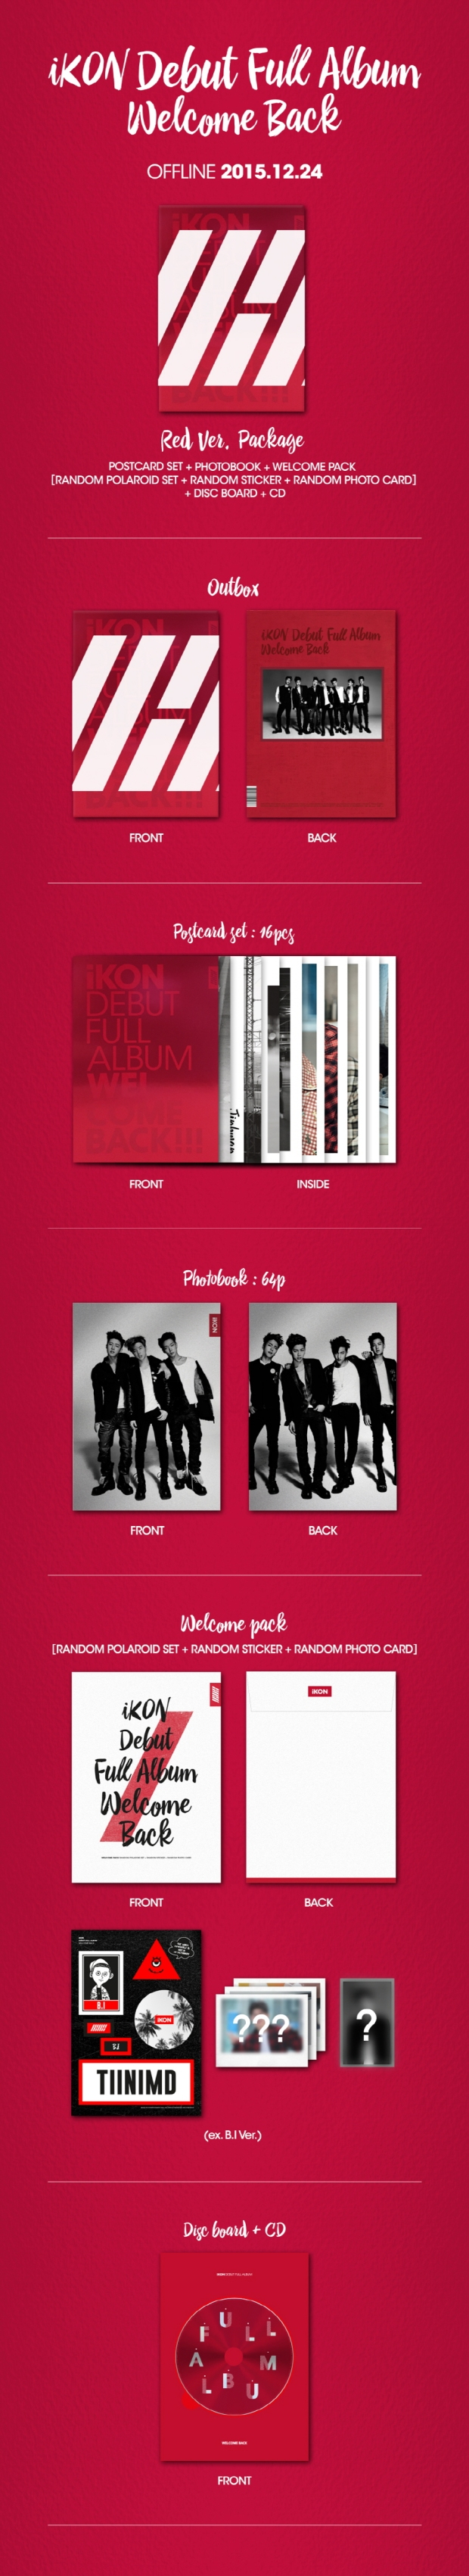 ikon_full_album_red_02